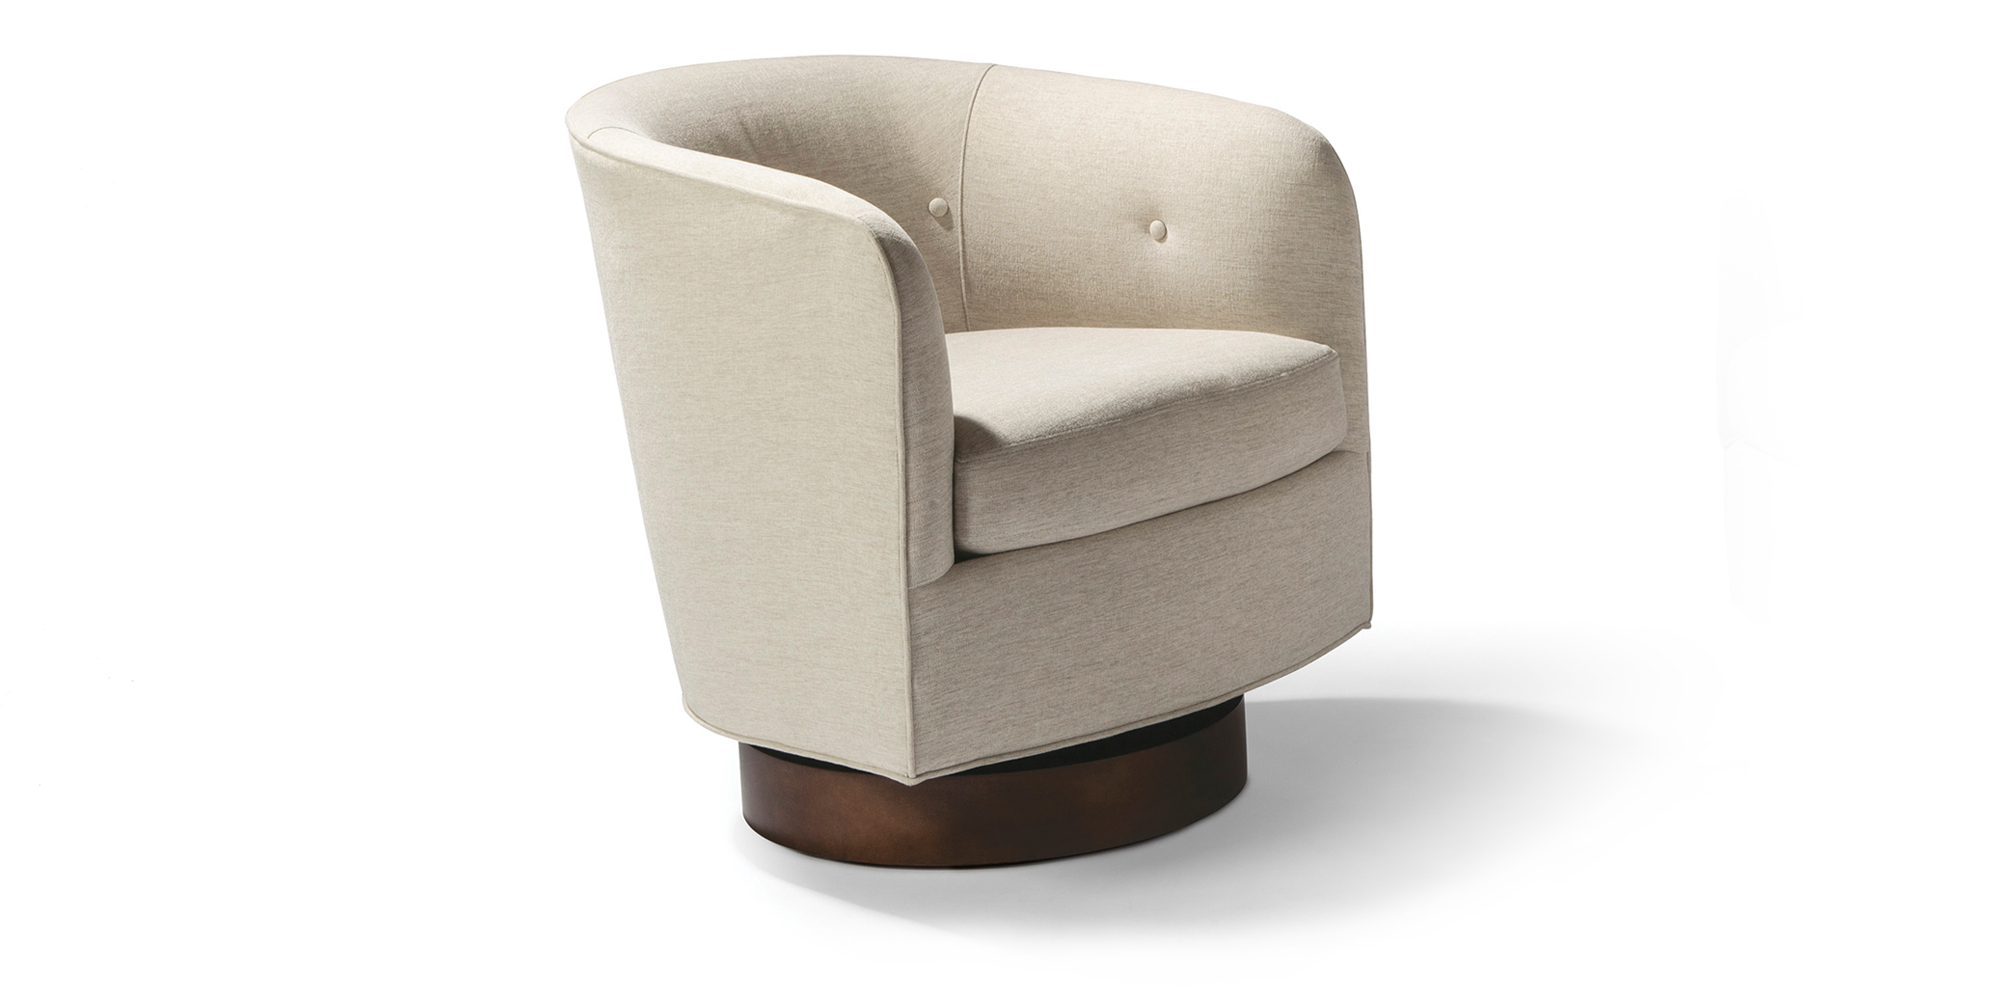 Stupendous Thayer Coggin Swivel Chairs And Recliners Unemploymentrelief Wooden Chair Designs For Living Room Unemploymentrelieforg